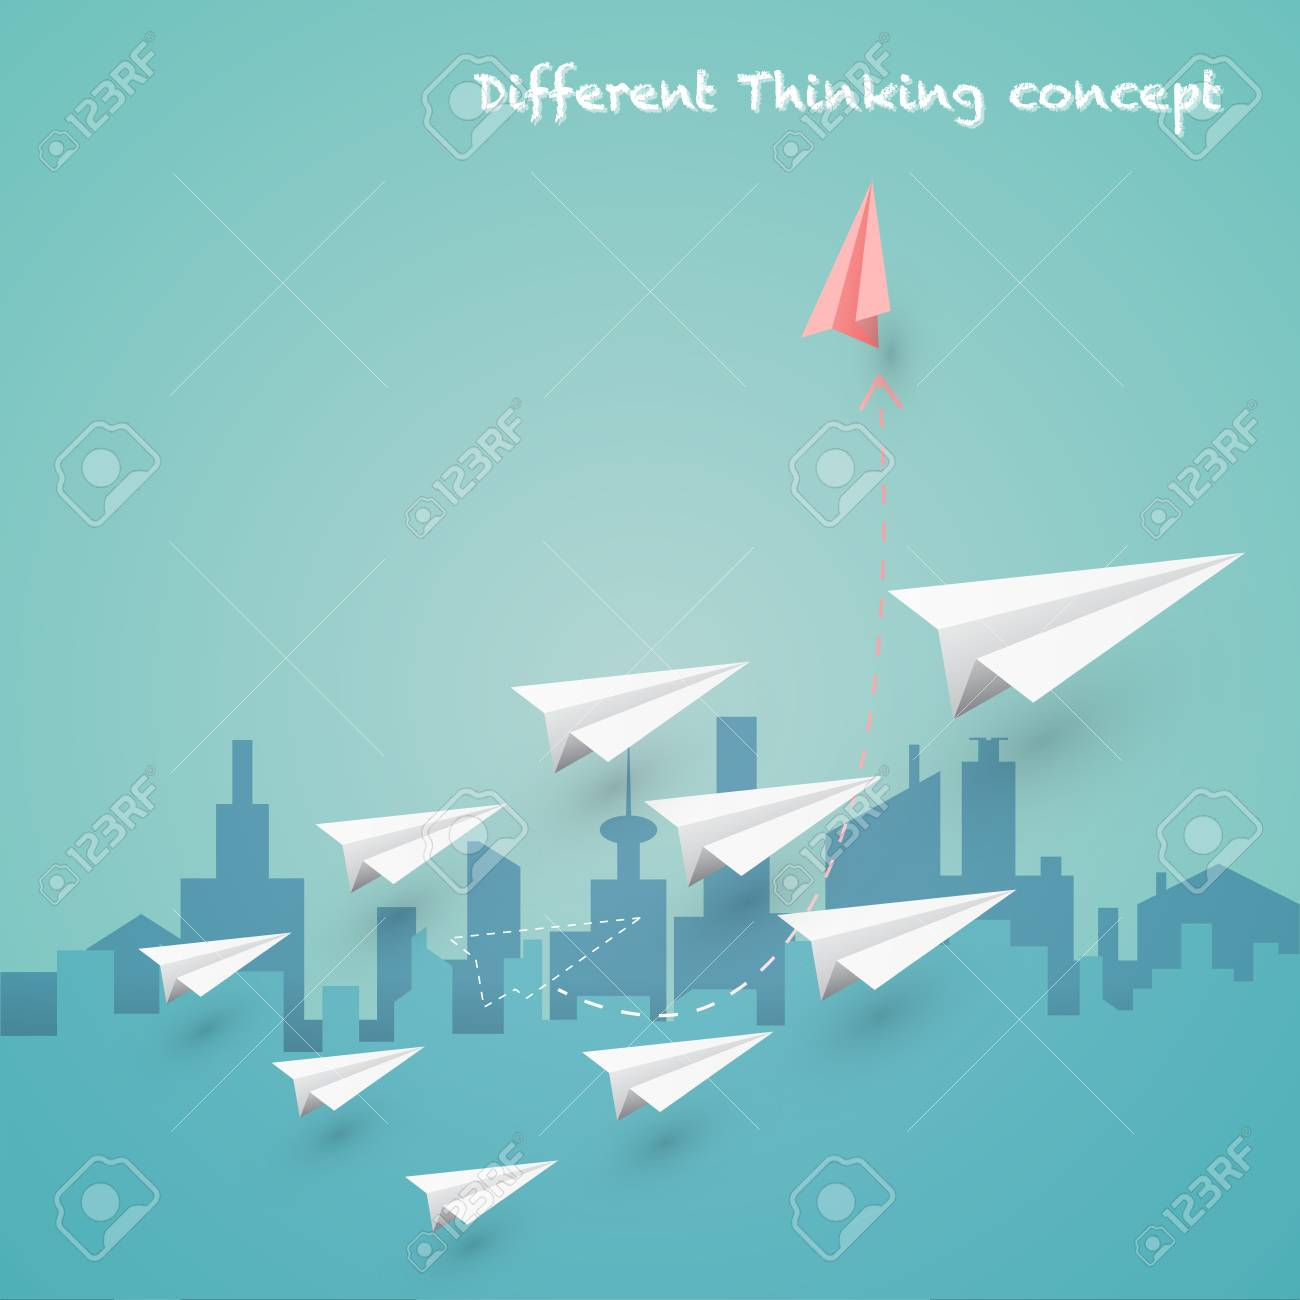 Difference thinking is make more experience and successful concept. Design with paper art plane and town background. - 96068007